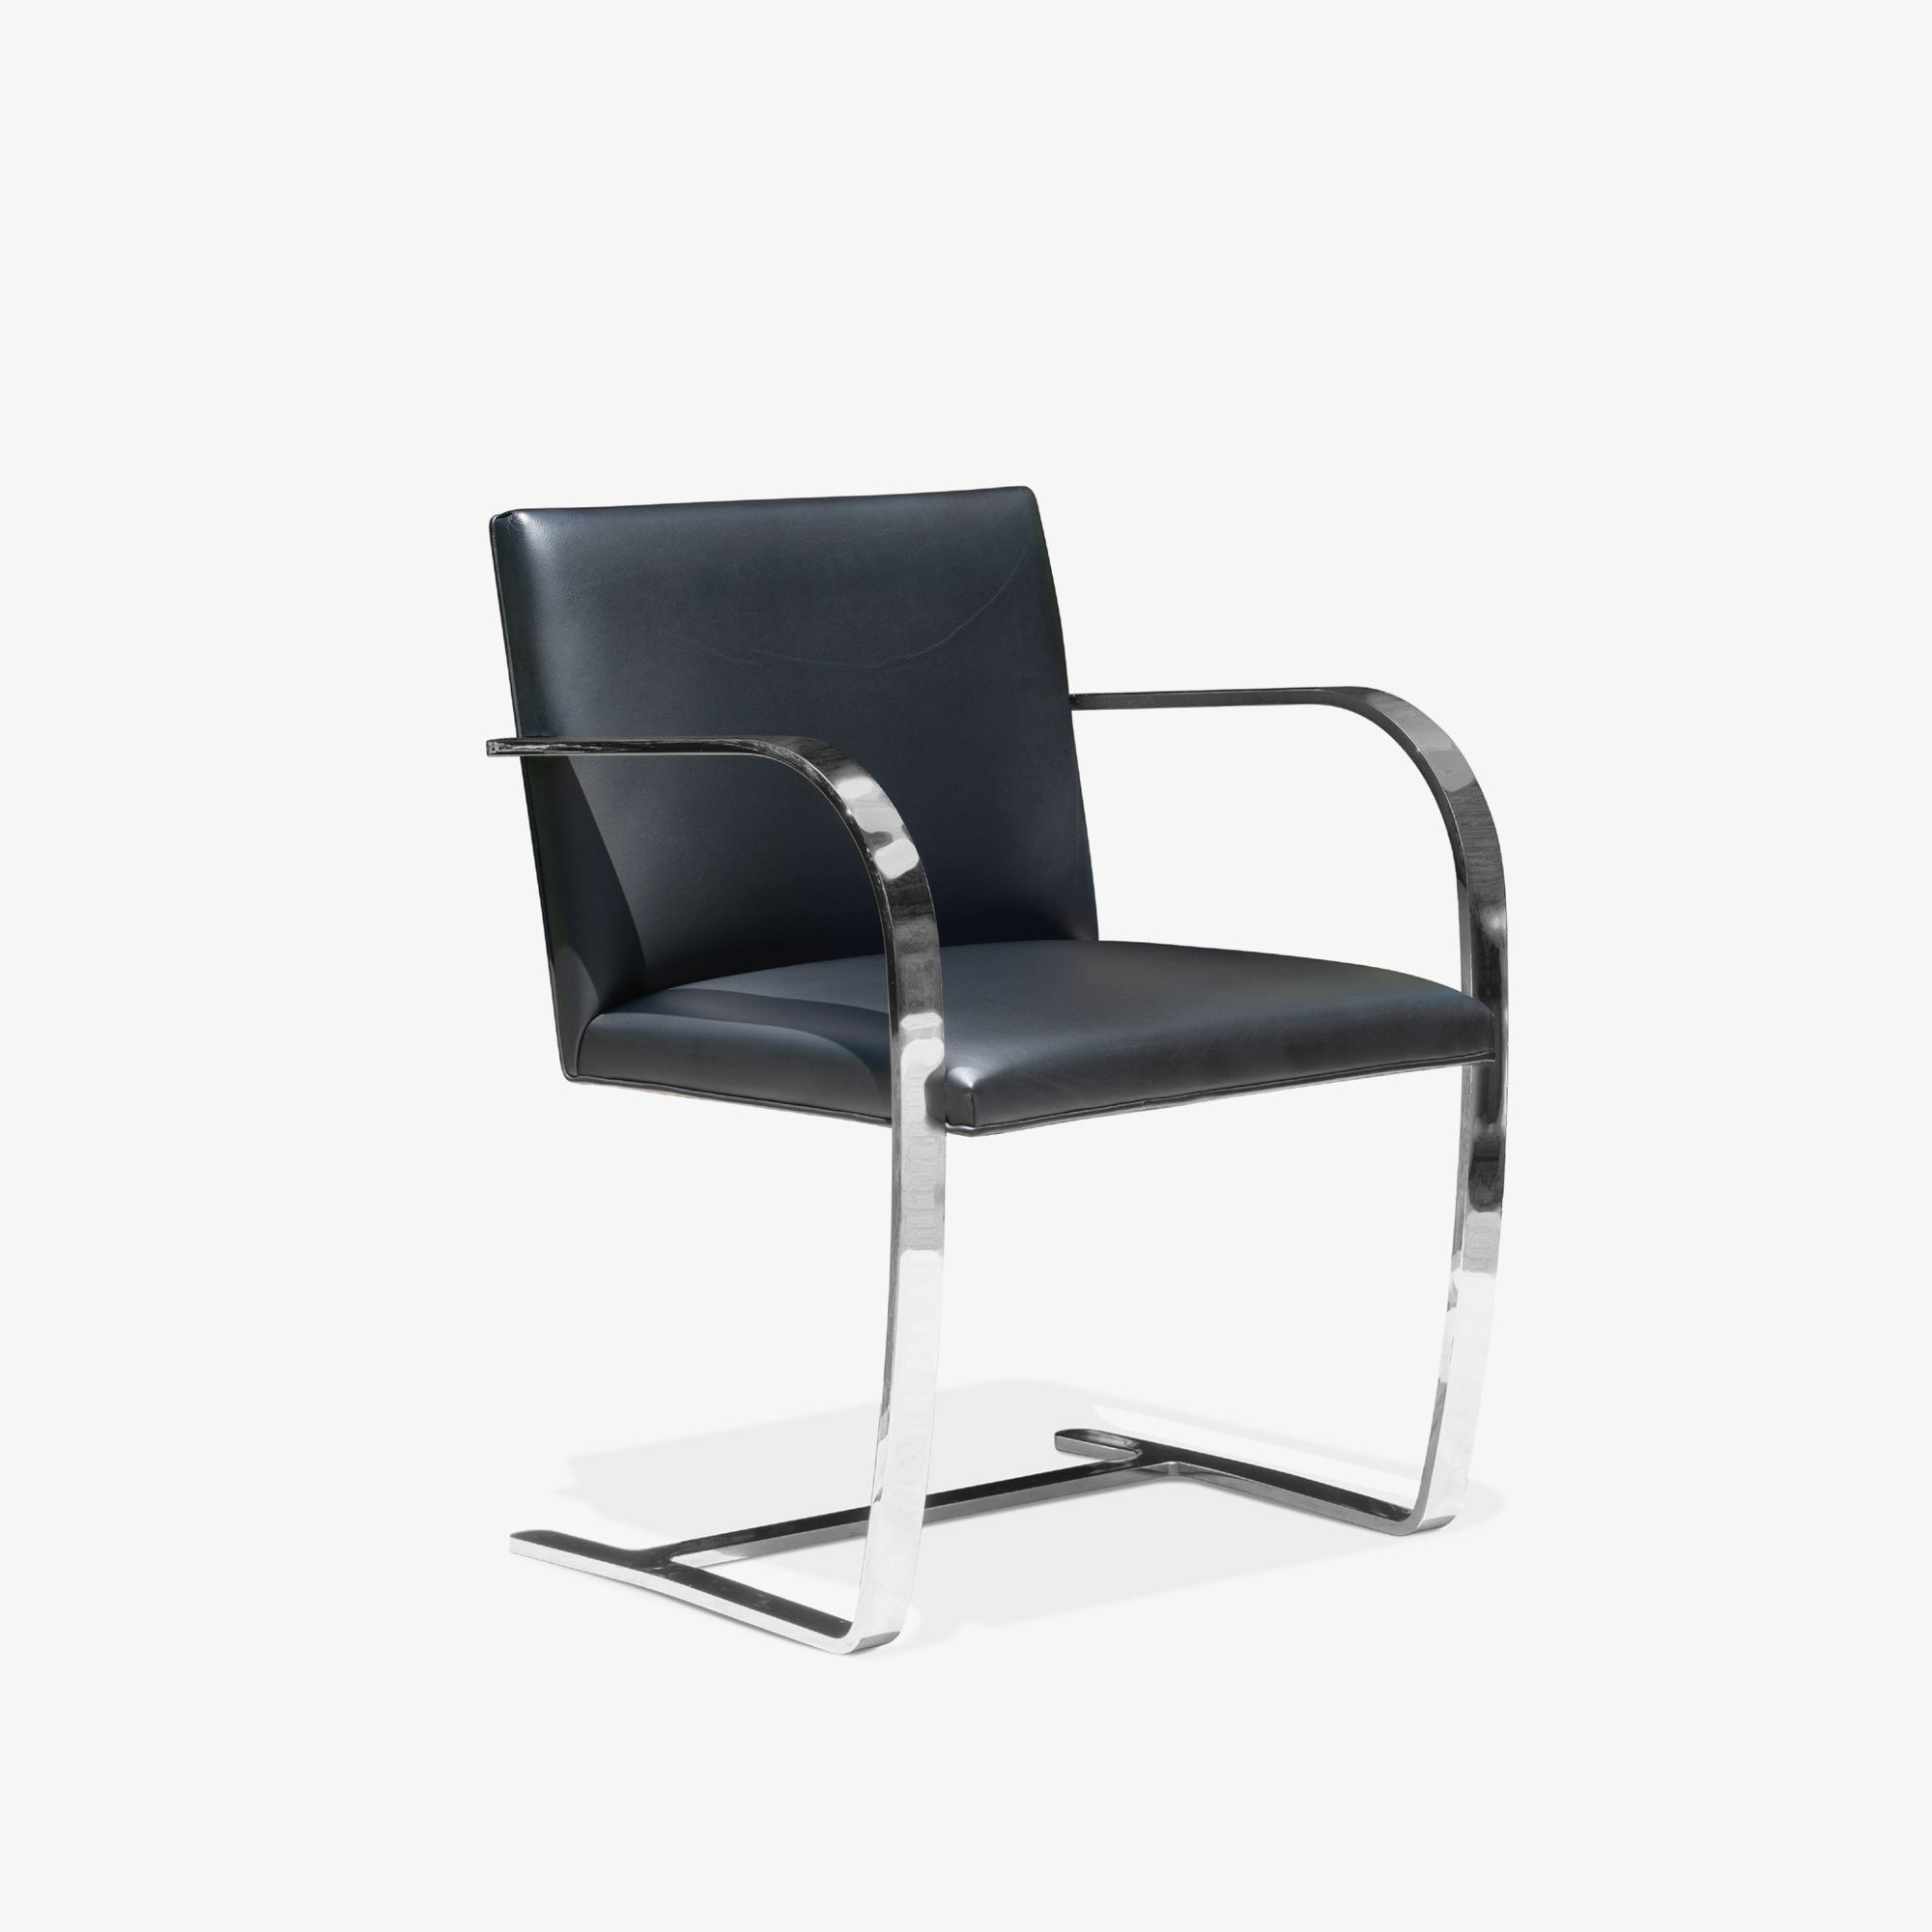 Brno Flat-Bar Chairs in Black Leather & Chrome by Ludwig Mies van